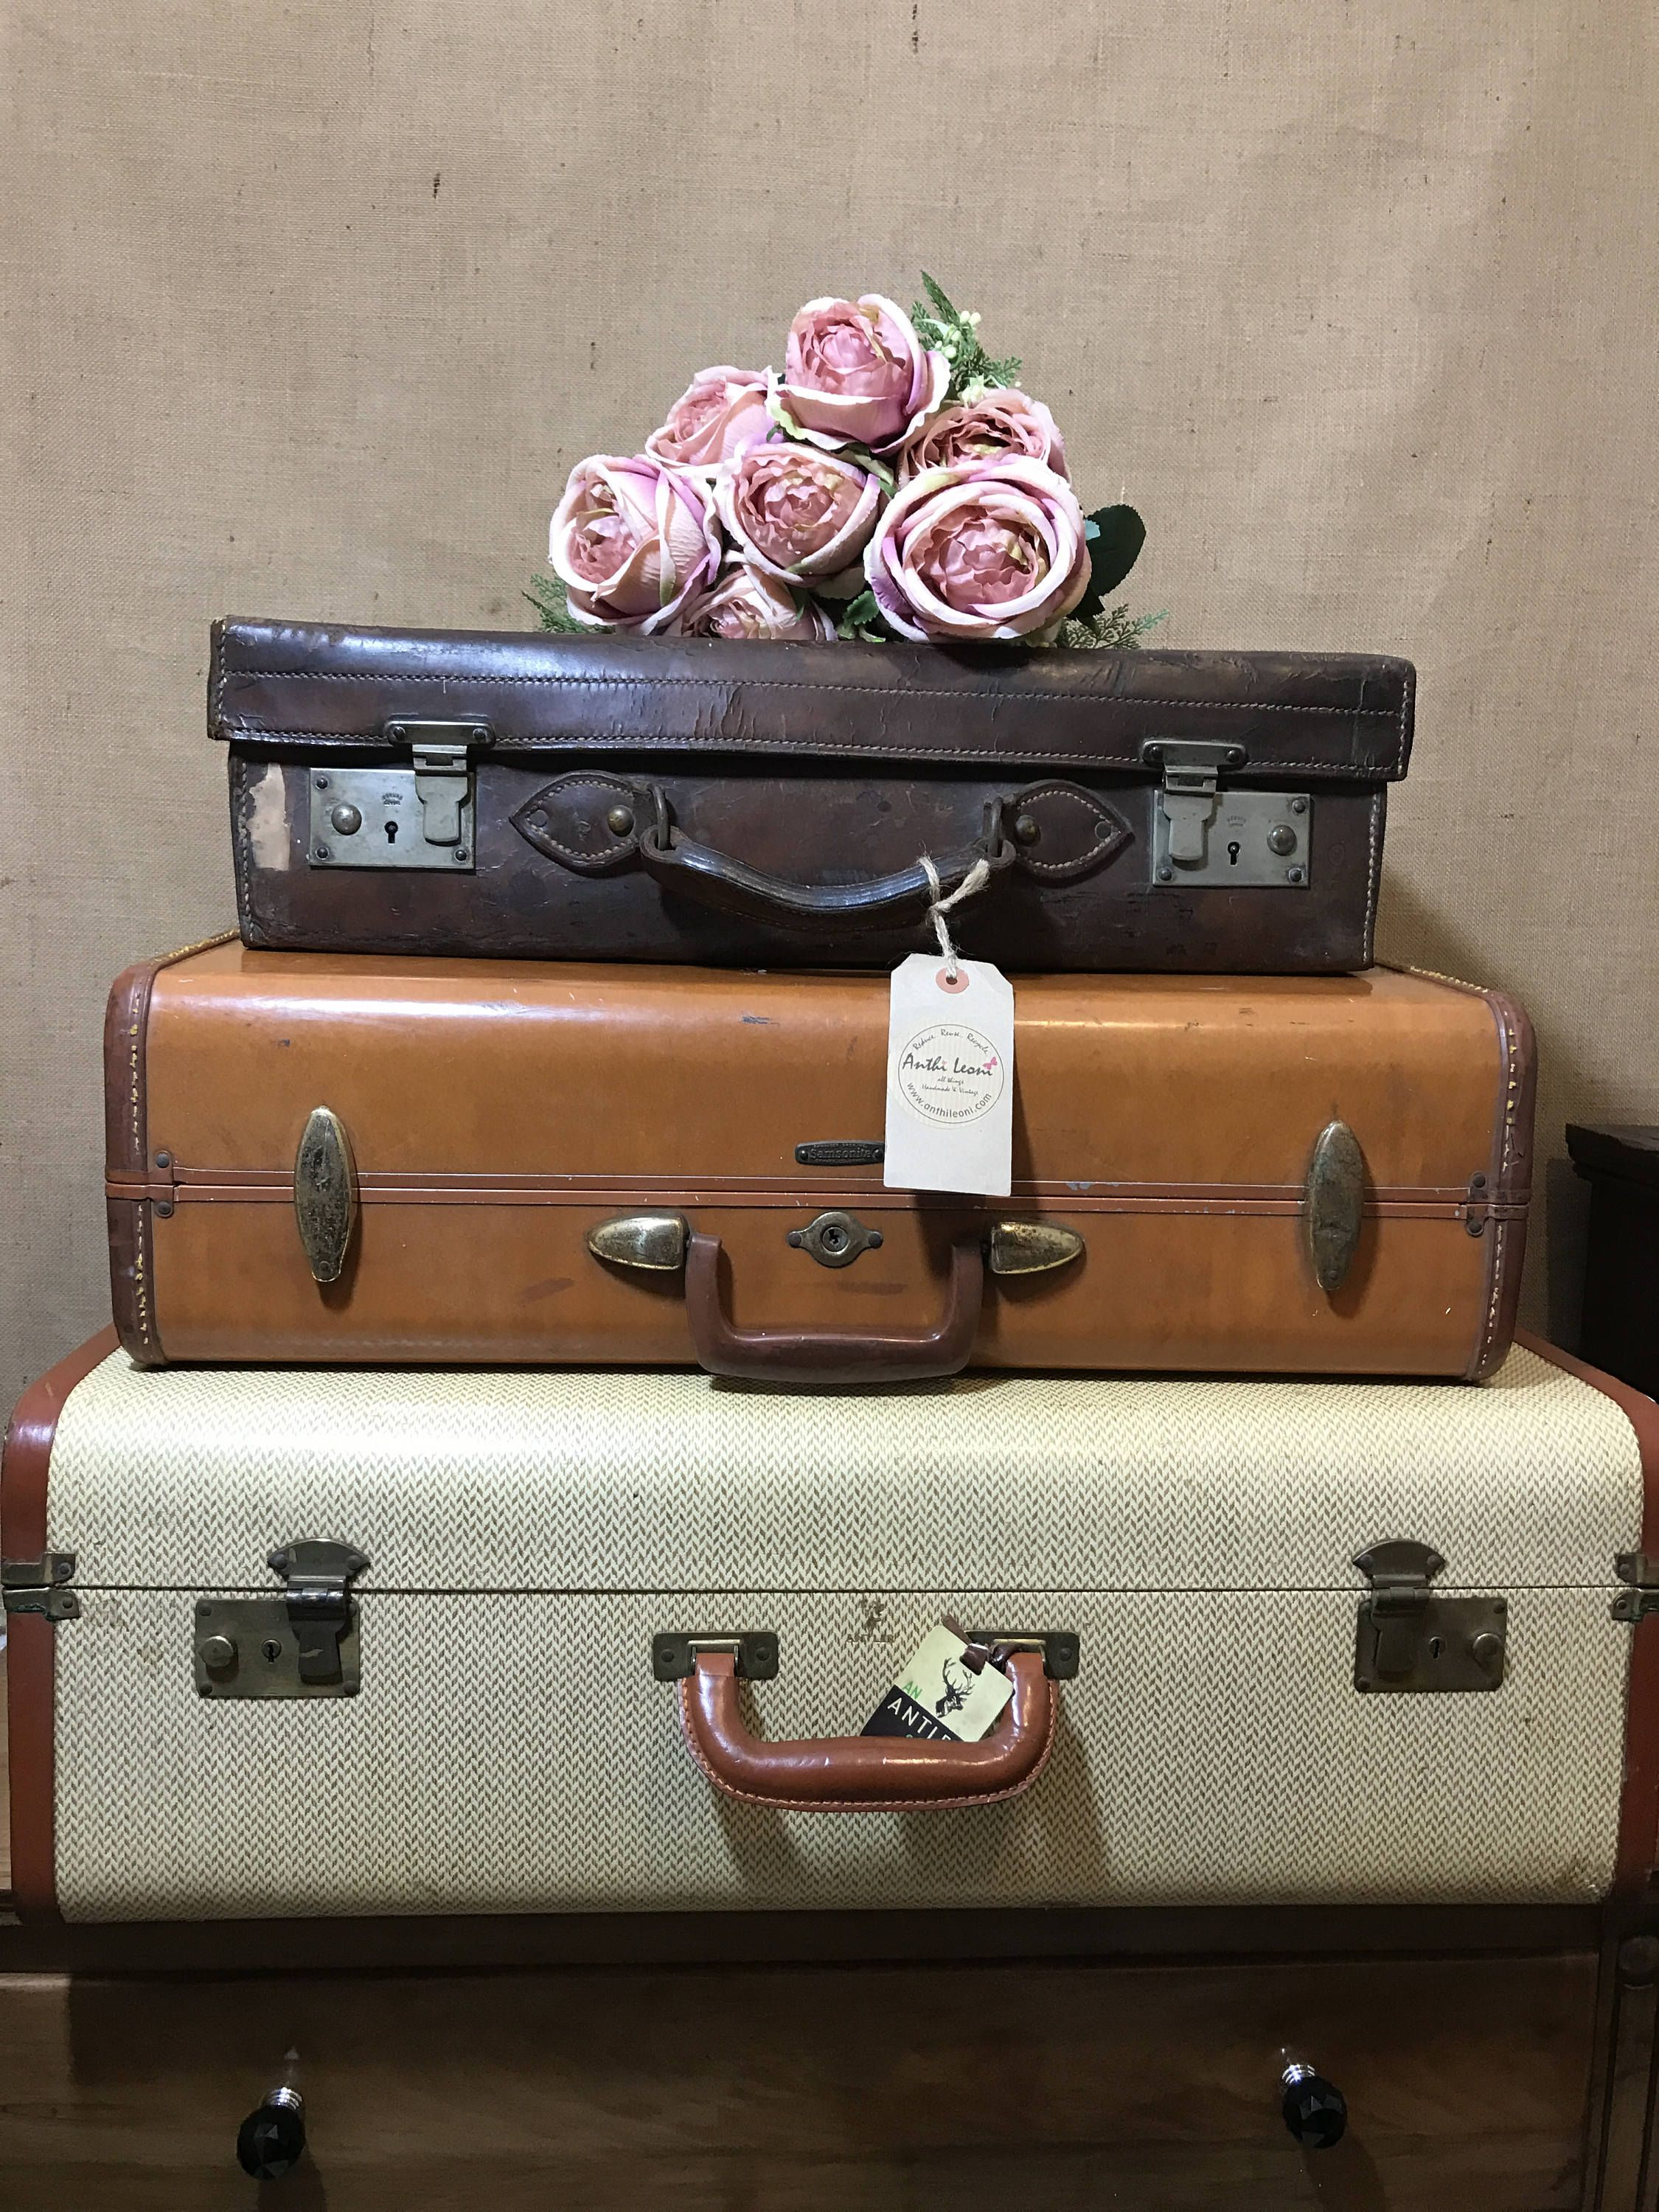 Vintage Designer Stacking Suitcases | Vintage LUGGAGE | Vintage Home Decor  | Vintage TRUNKS | Interior Design Inspirations